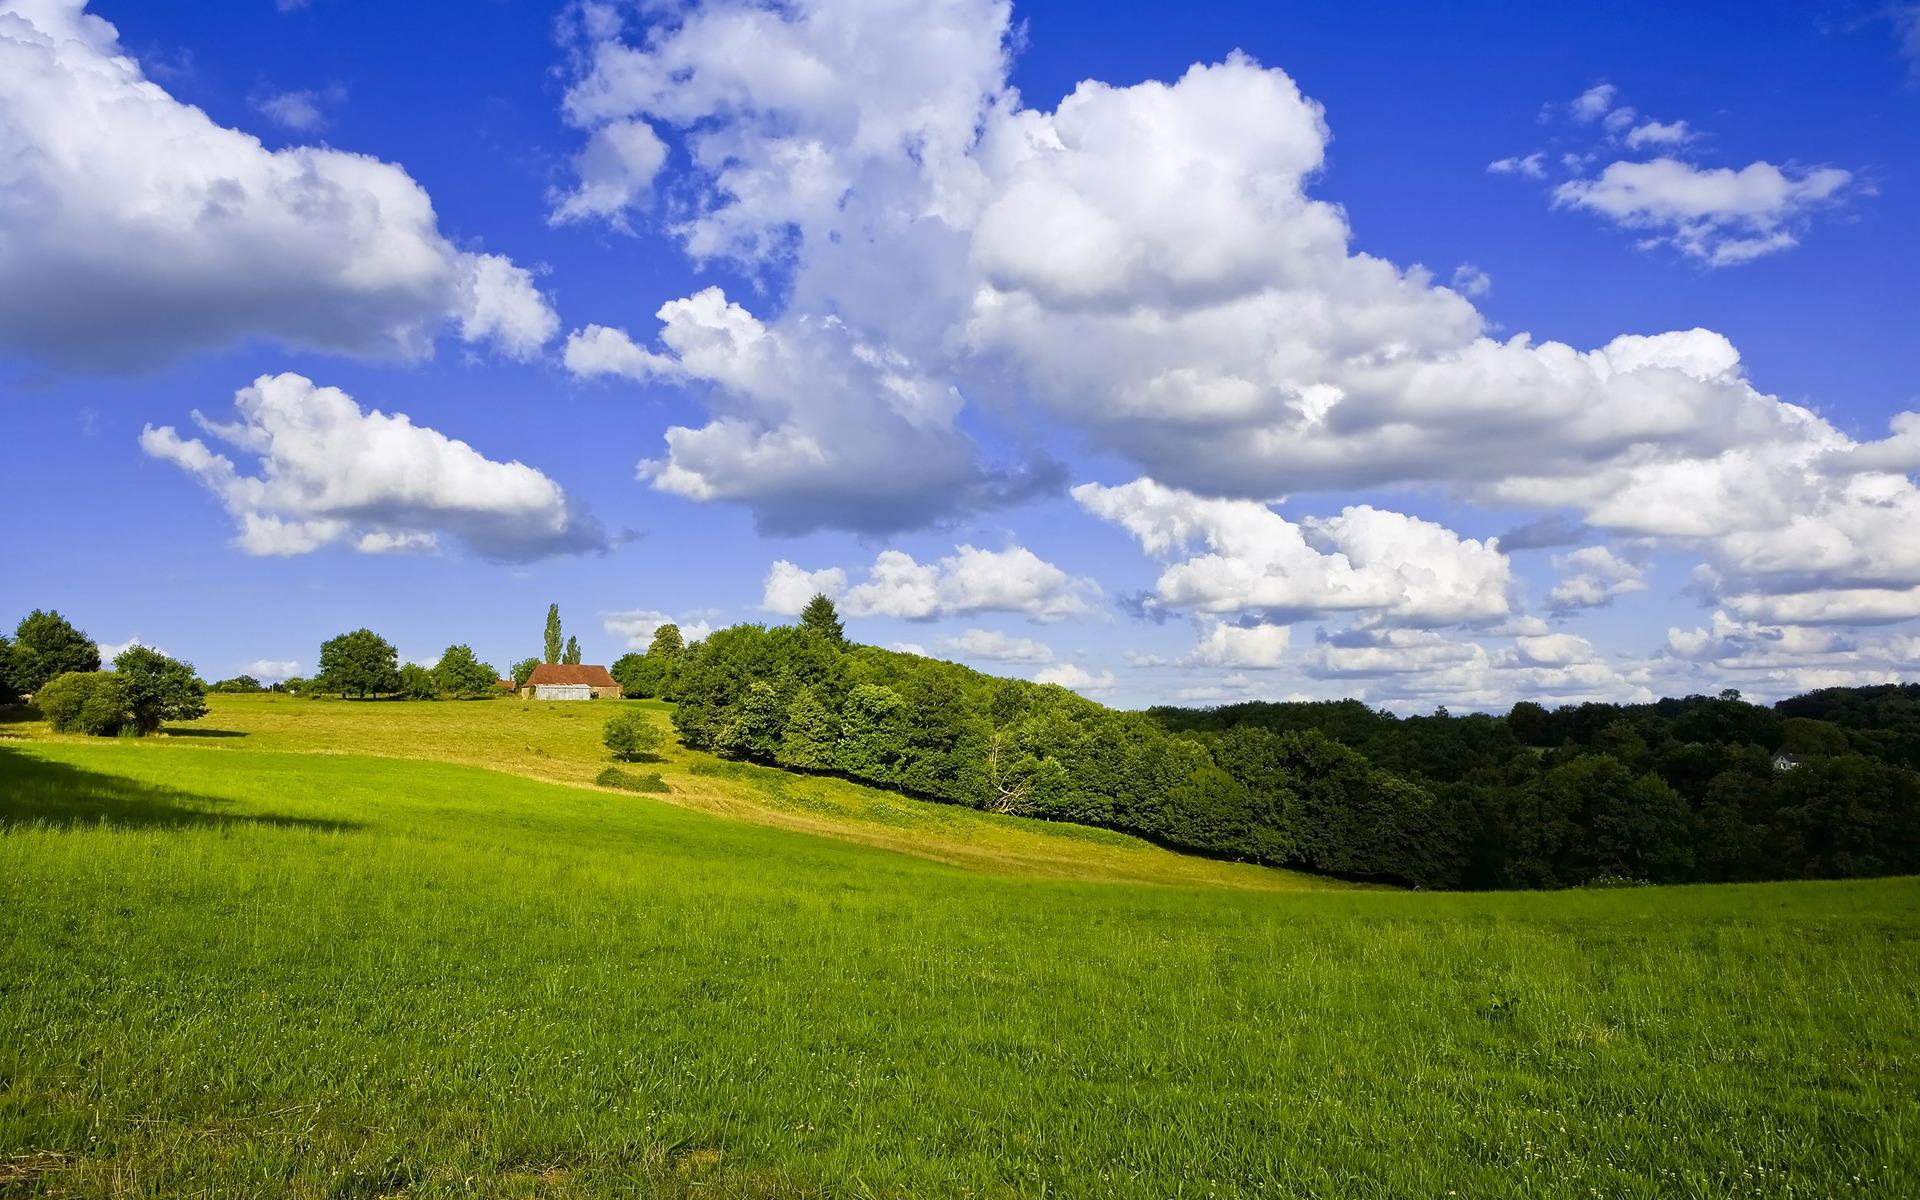 house on a green field wallpapers | house on a green field stock photos